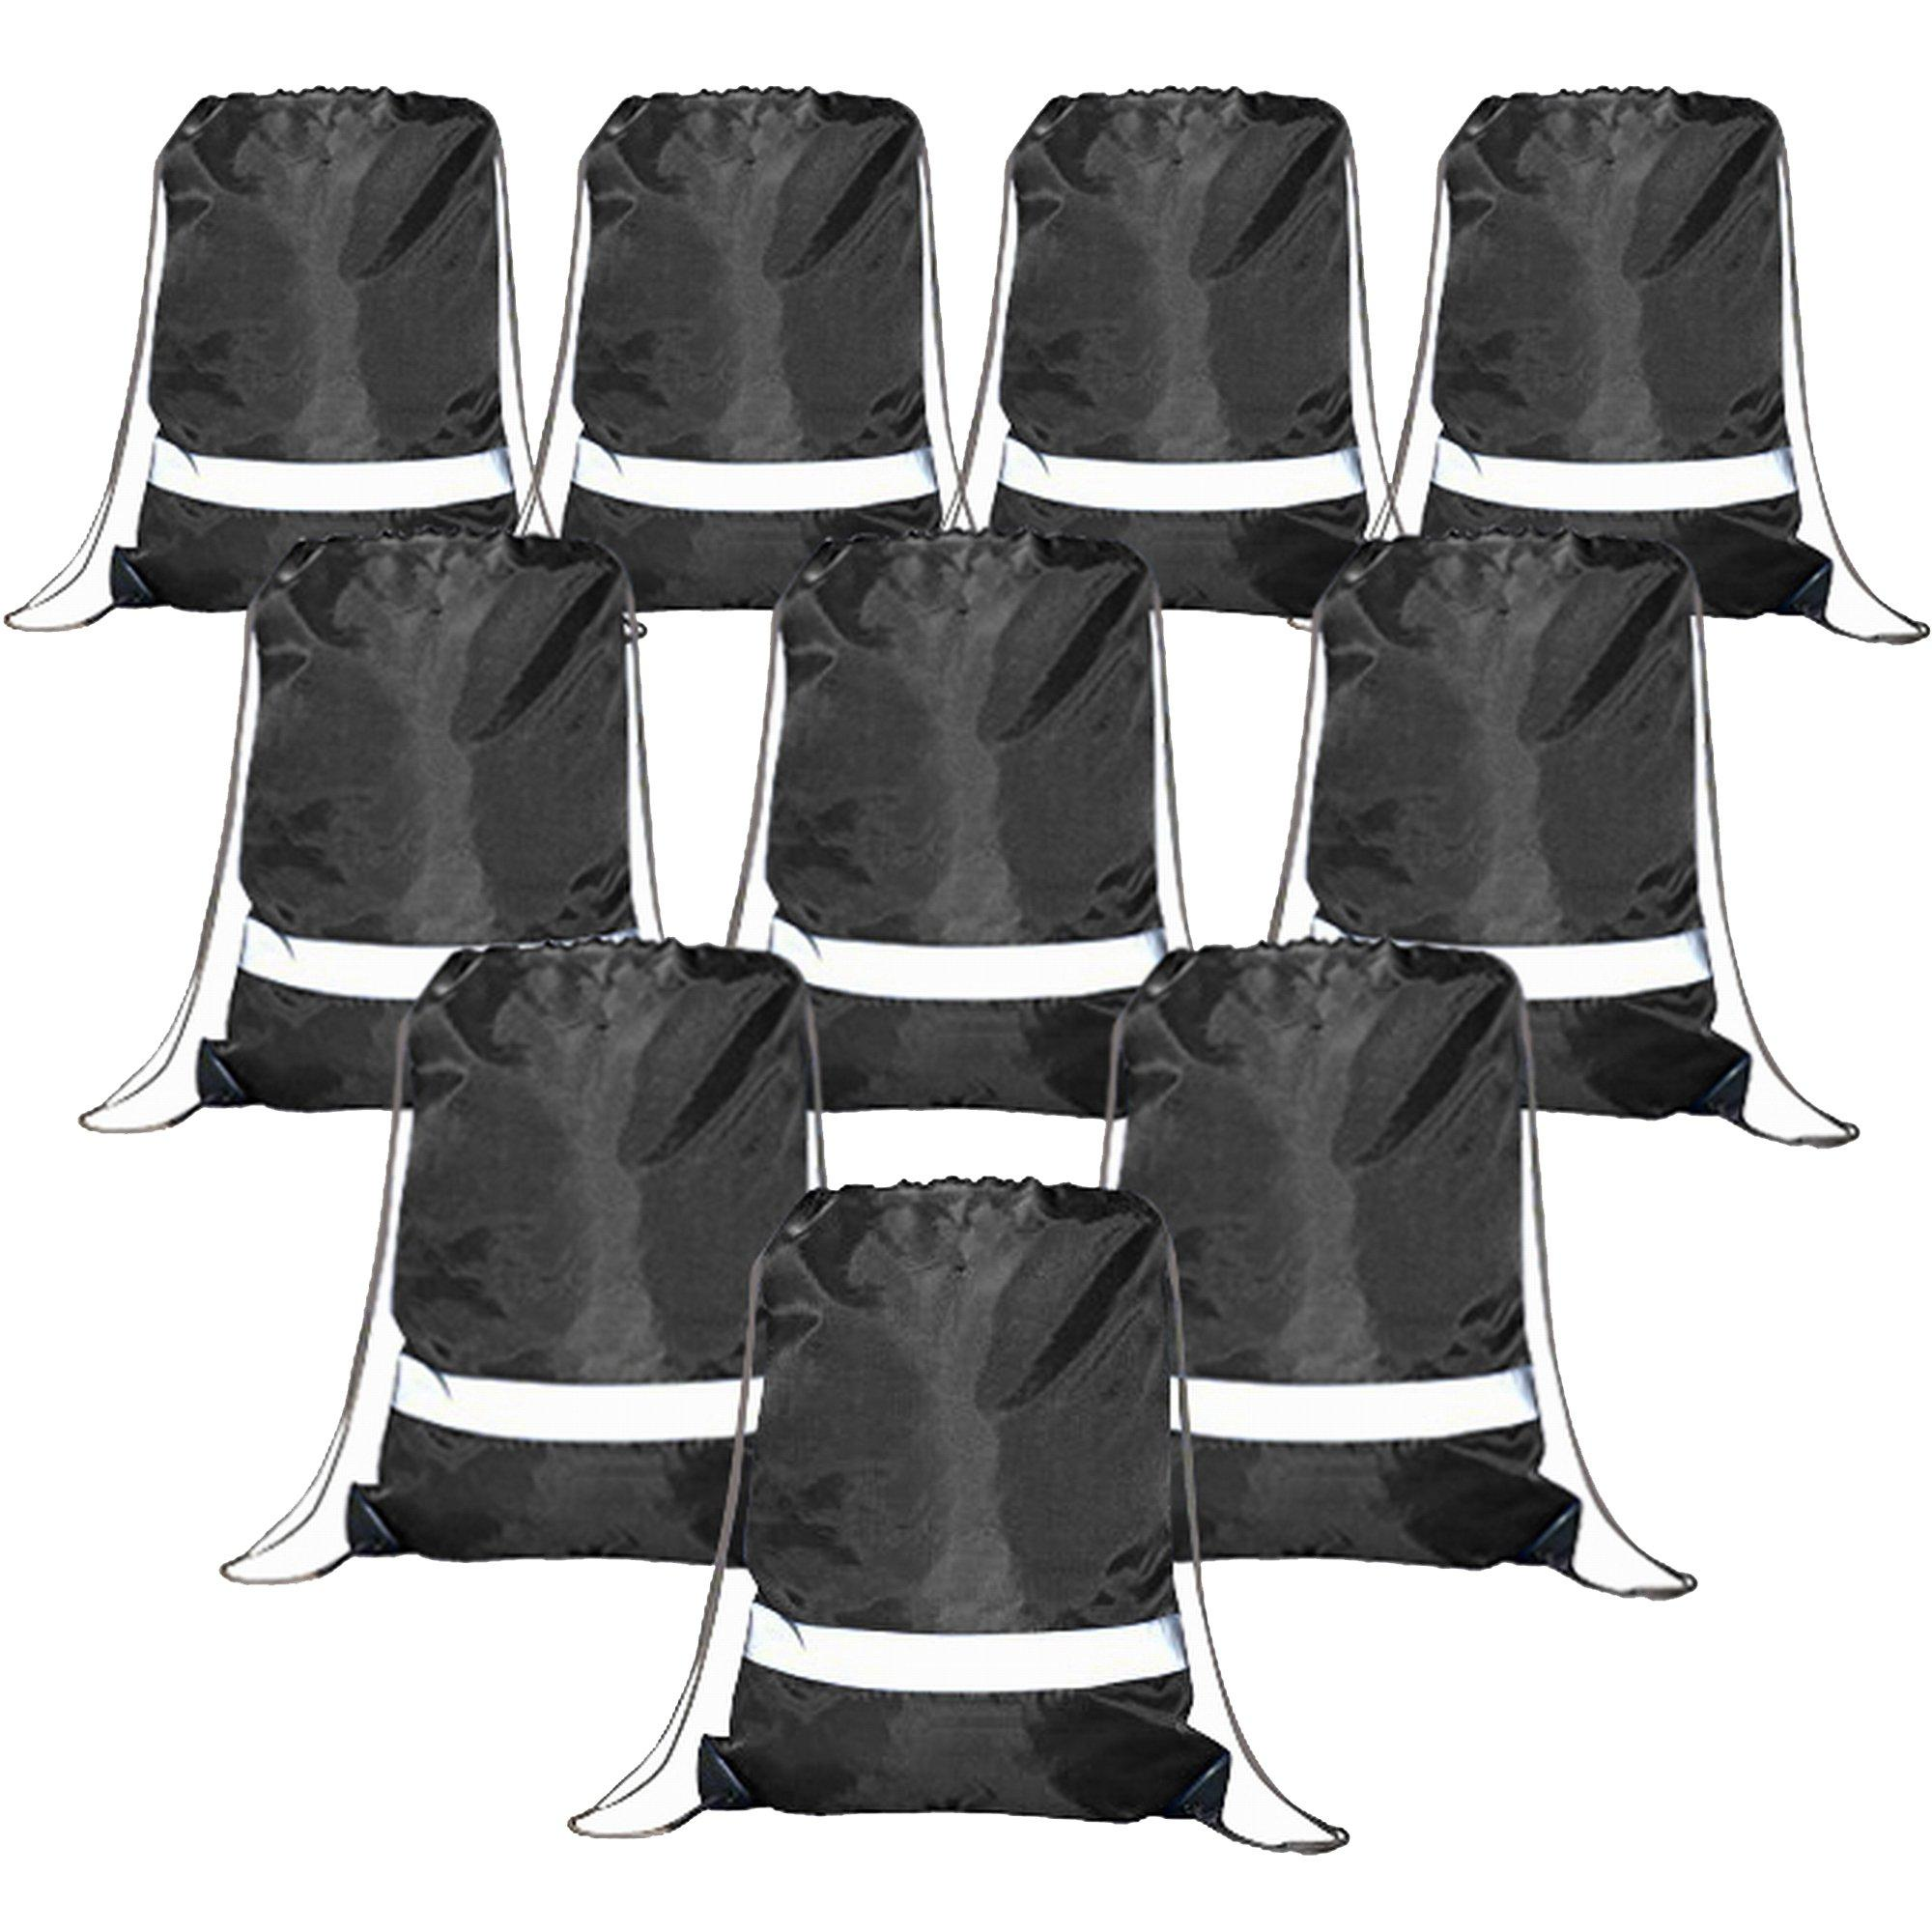 Drawstring Backpack Bags Reflective 10 Pack, Promotional Spo